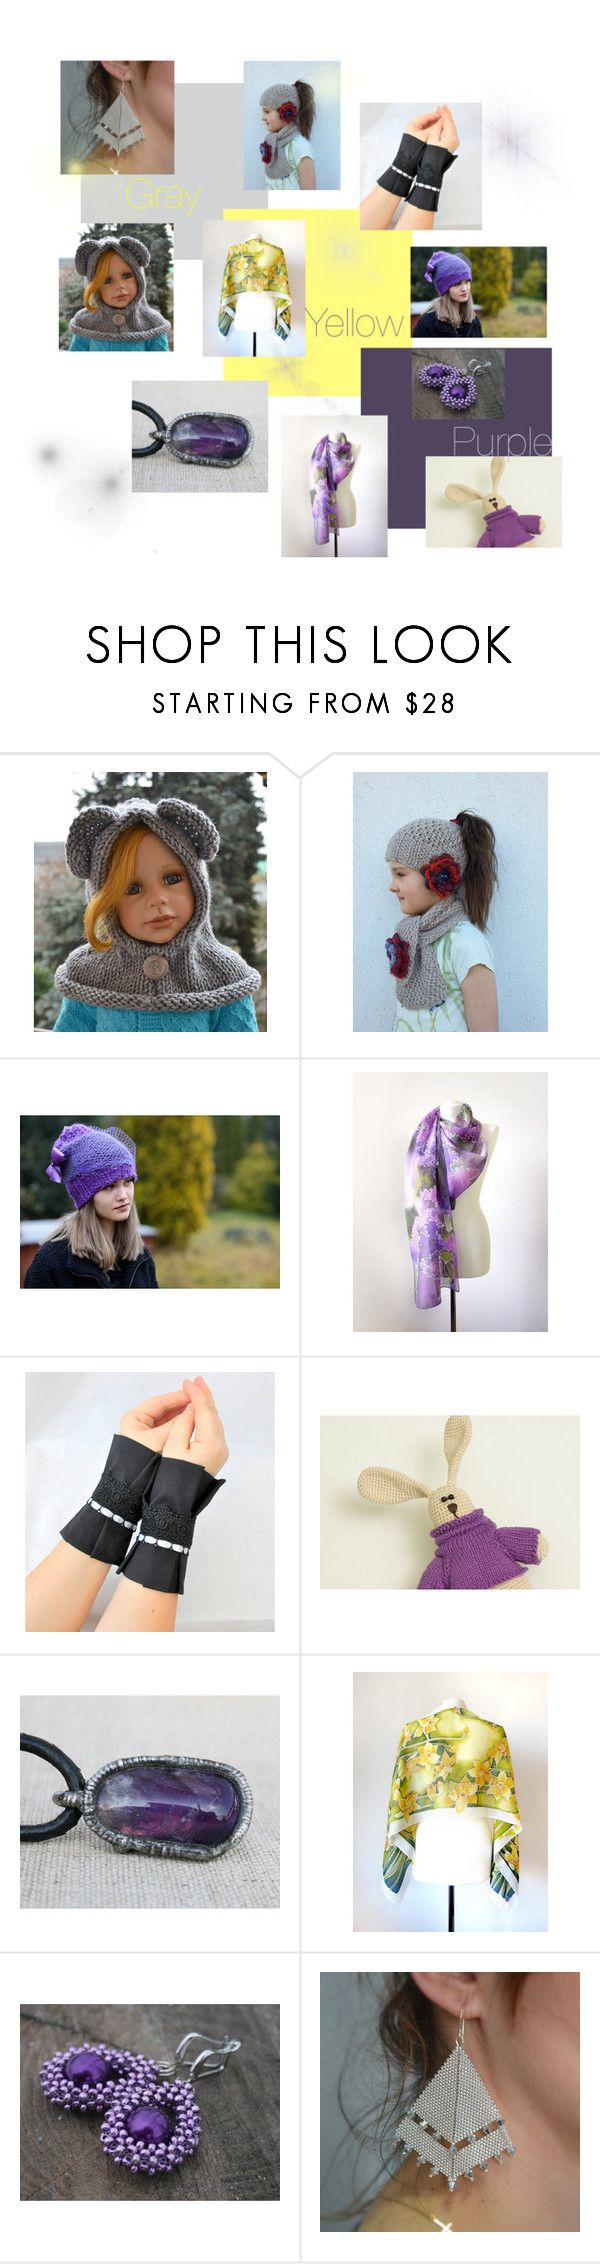 """Gray, yellow, purple"" by lidia-malawska ❤ liked on Polyvore featuring gifts, children and womanfashion"